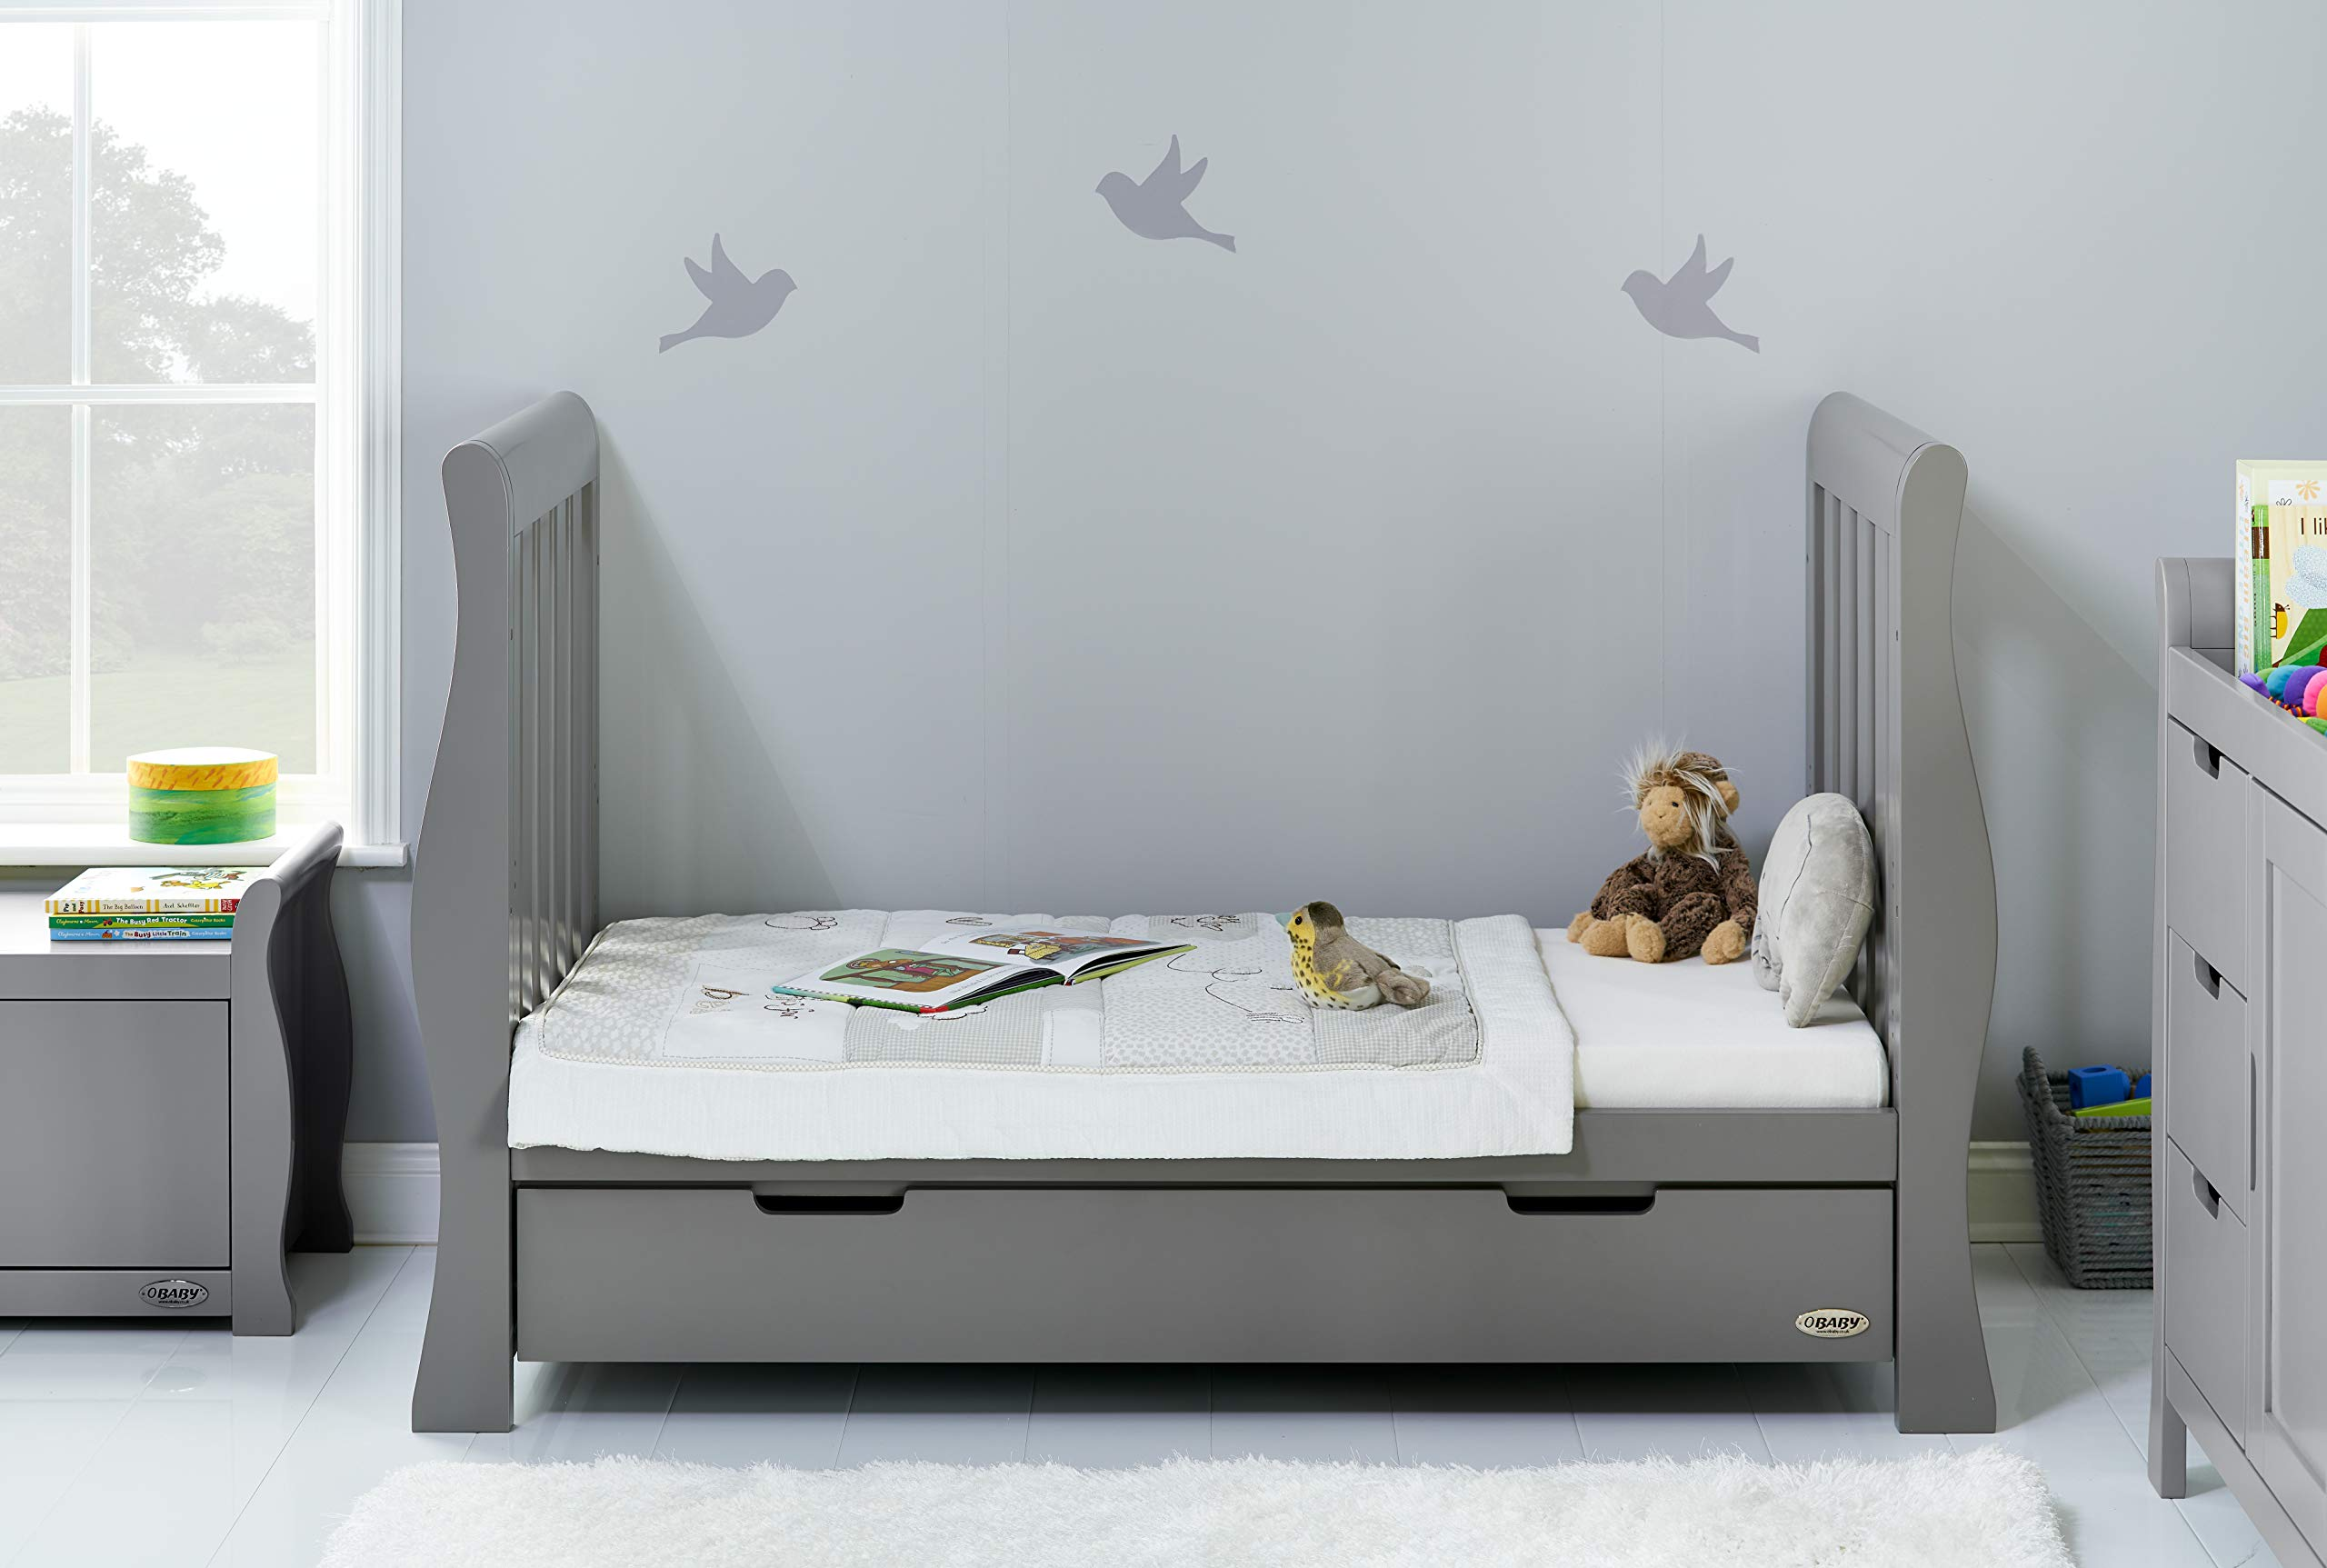 Obaby Stamford Sleigh Luxe Cot Bed - Taupe Grey Obaby Adjustable 3 position mattress height Bed ends split to transforms into toddler bed Includes matching under drawer for storage 3